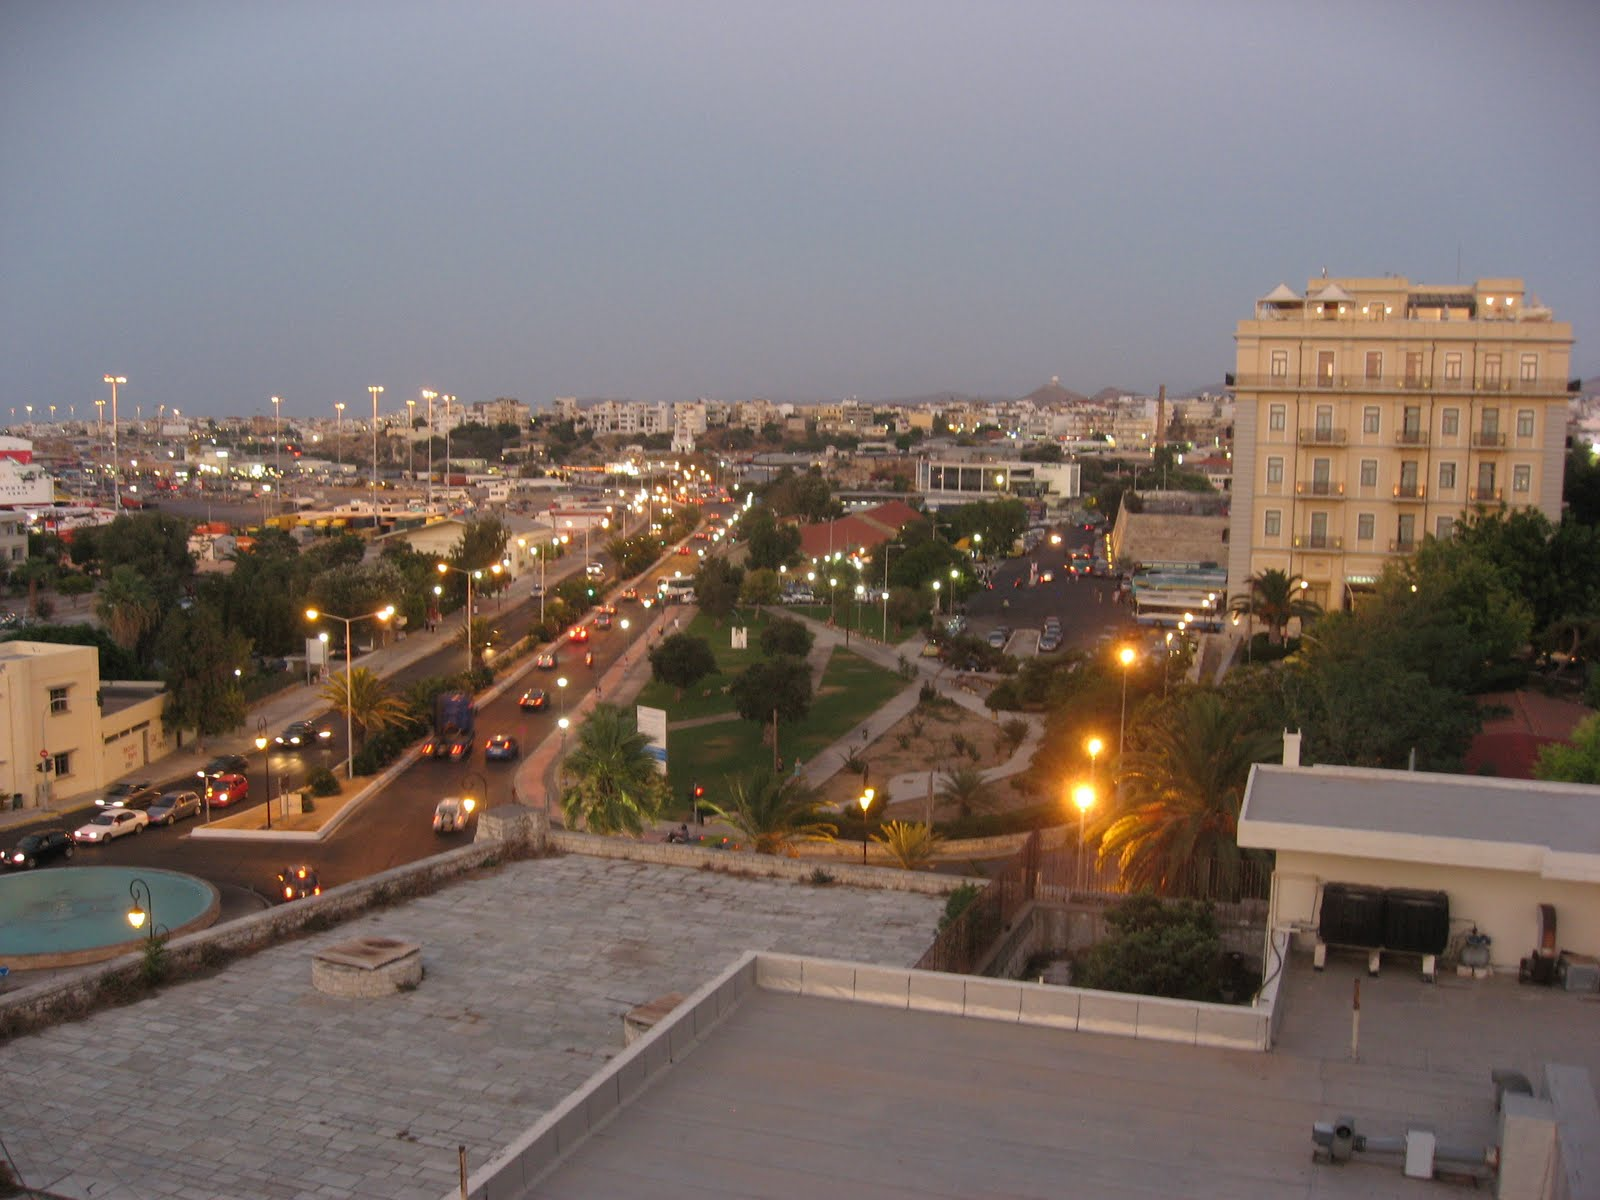 Heraklion, Greece, City overview at dusk